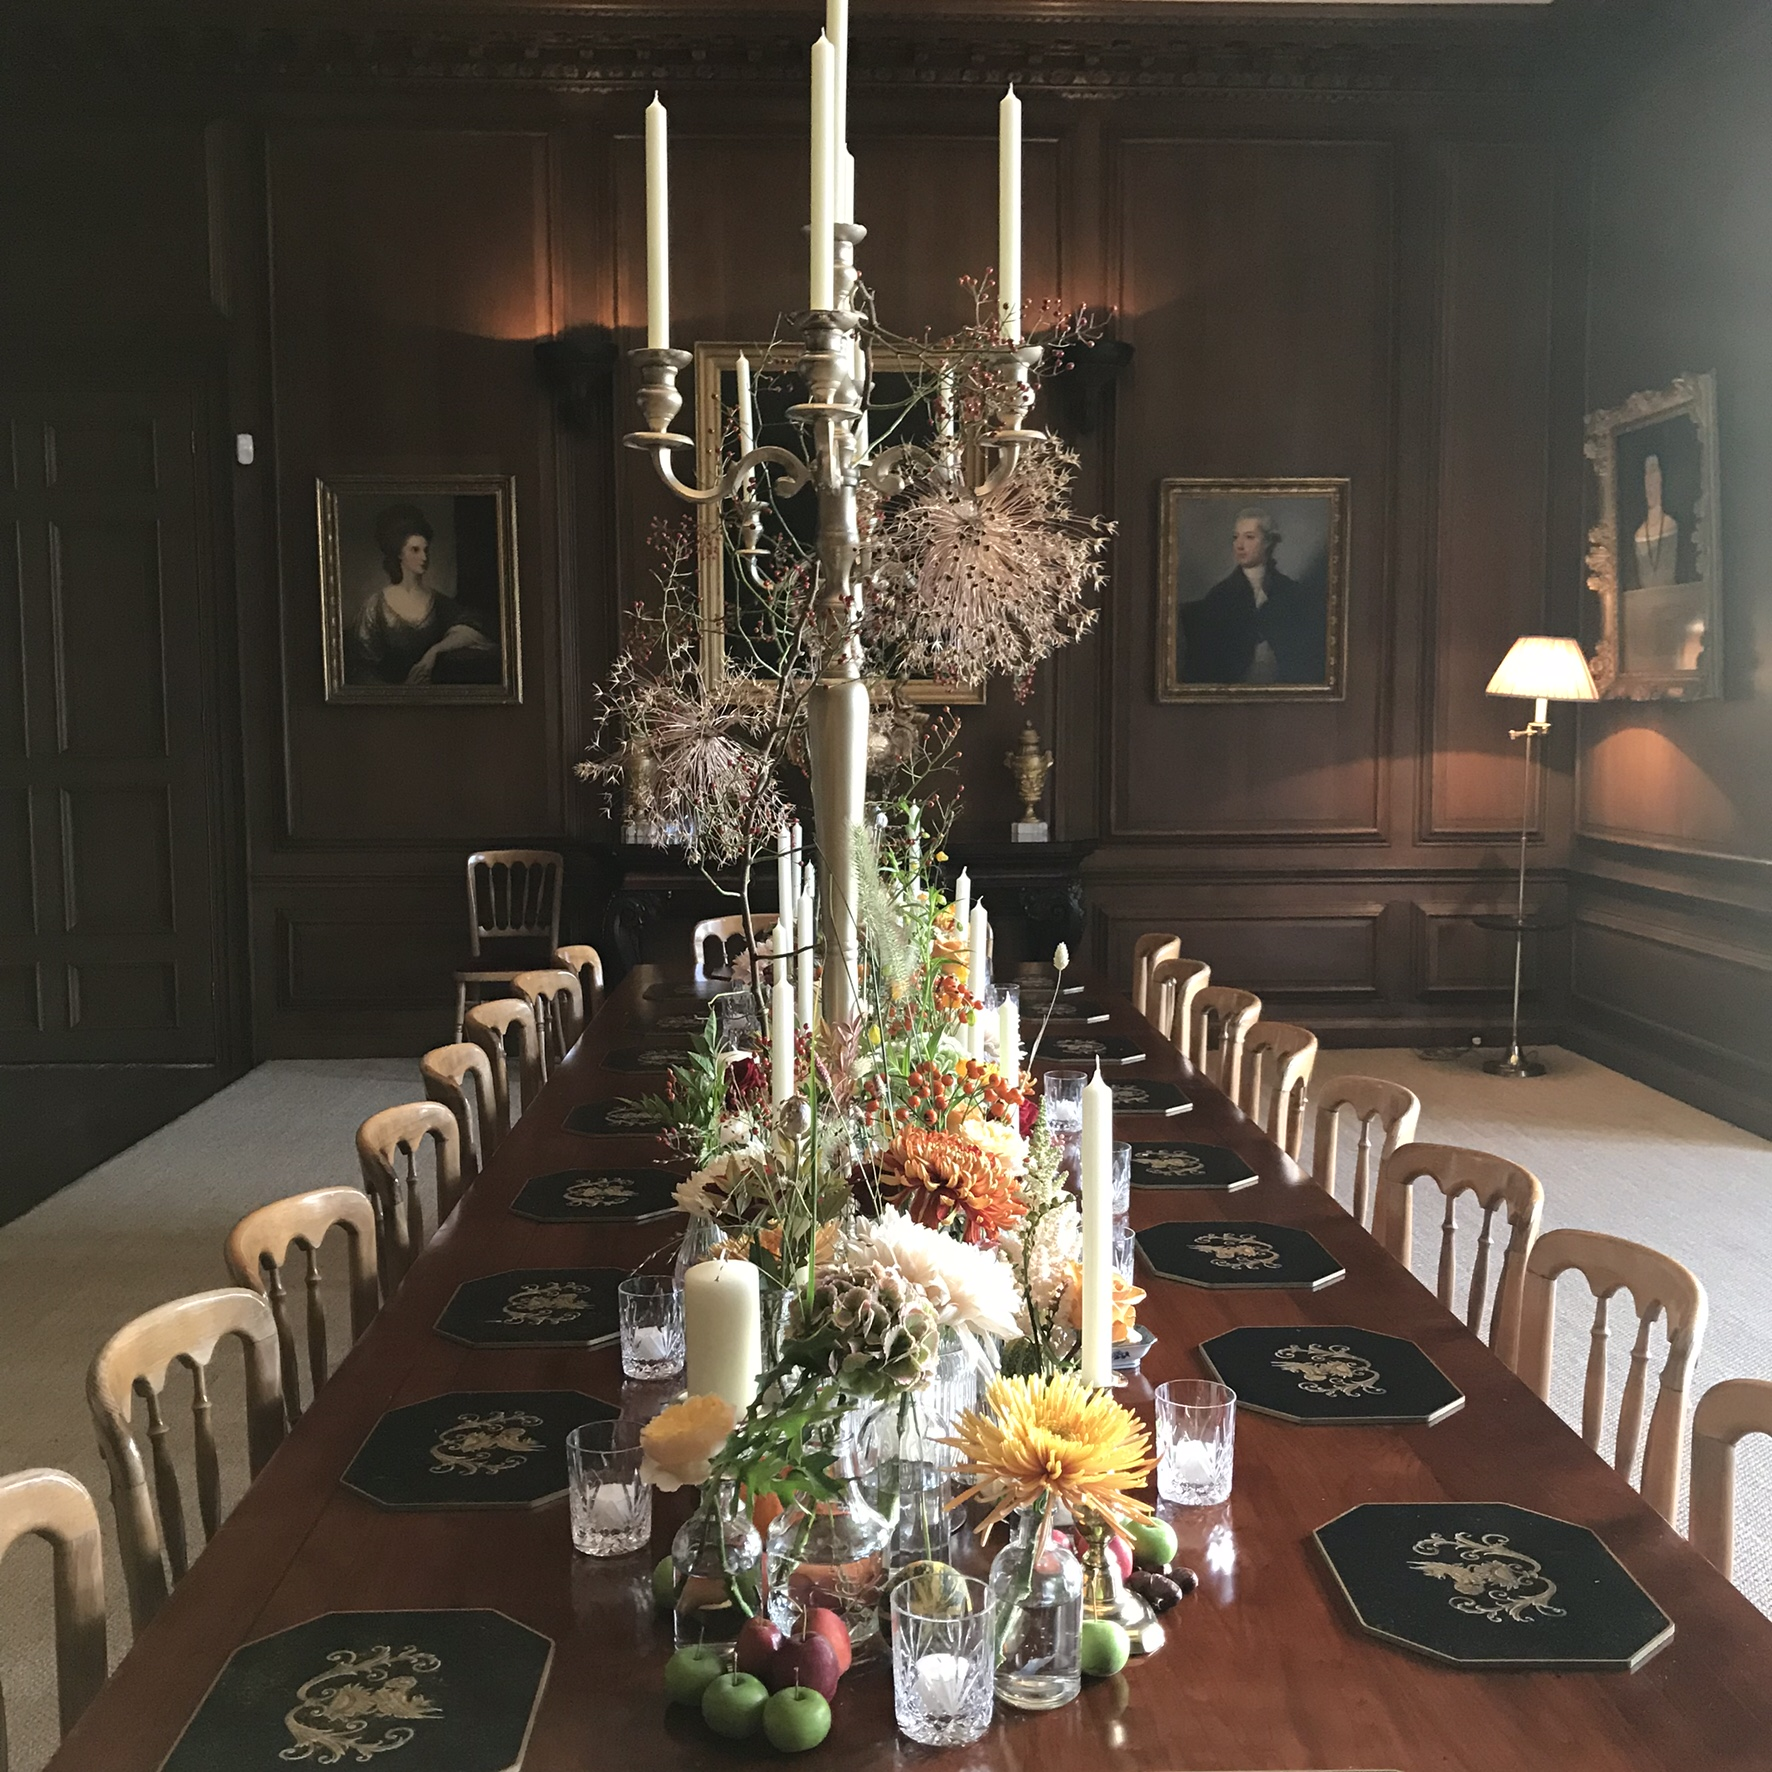 The Dining Room at Cowdray House